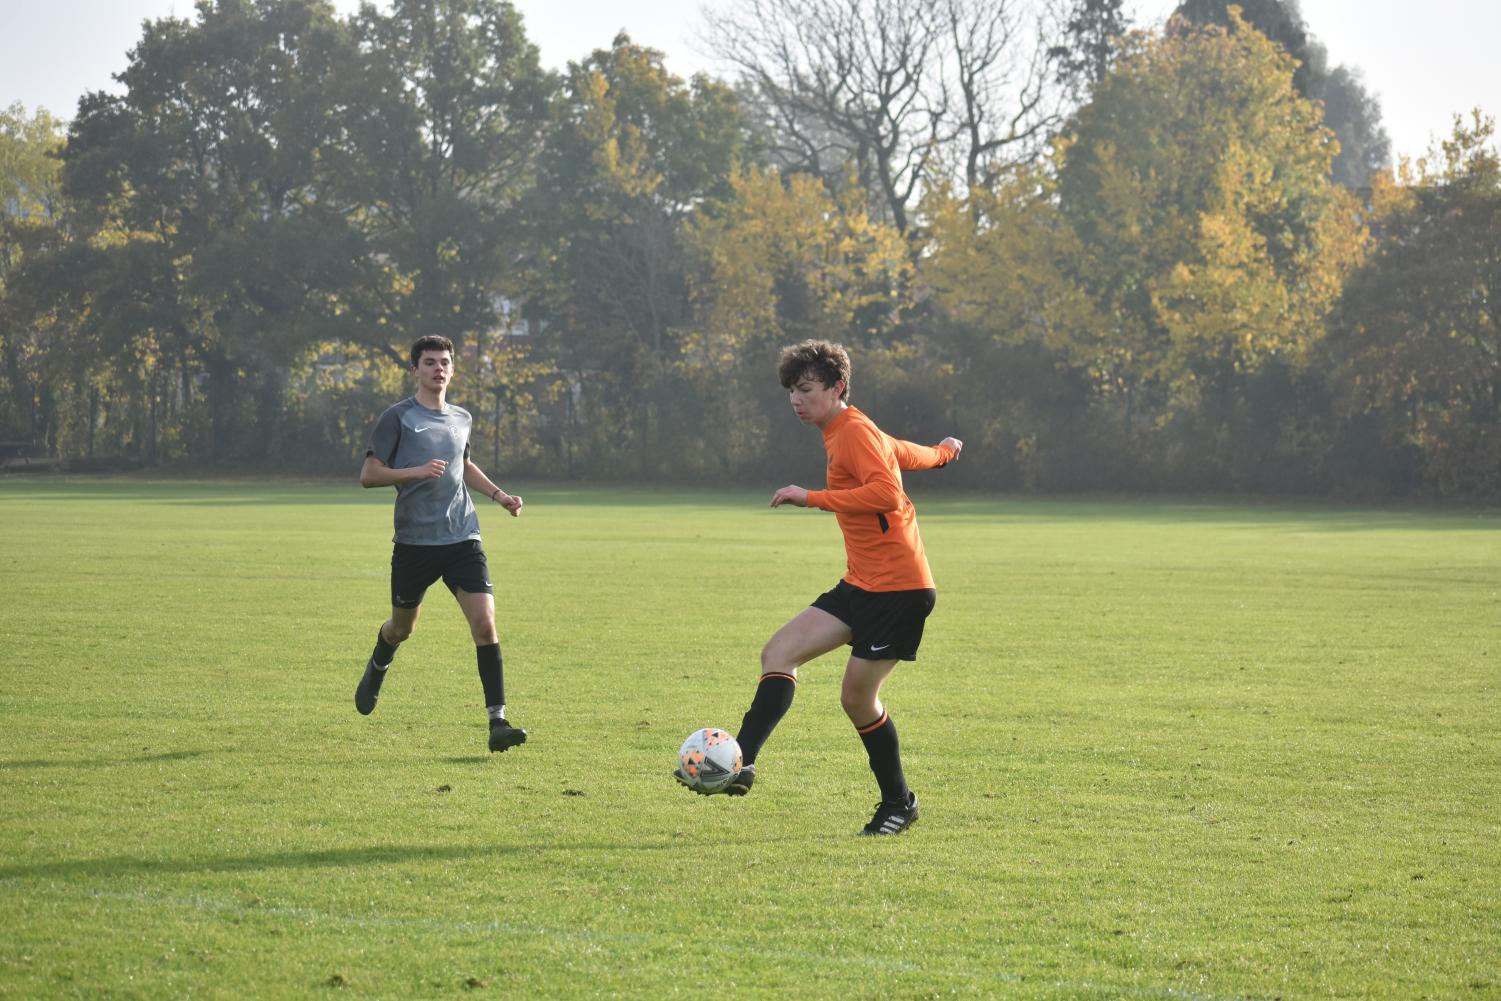 Max van Zyl ('21) crosses the ball to a teammate.